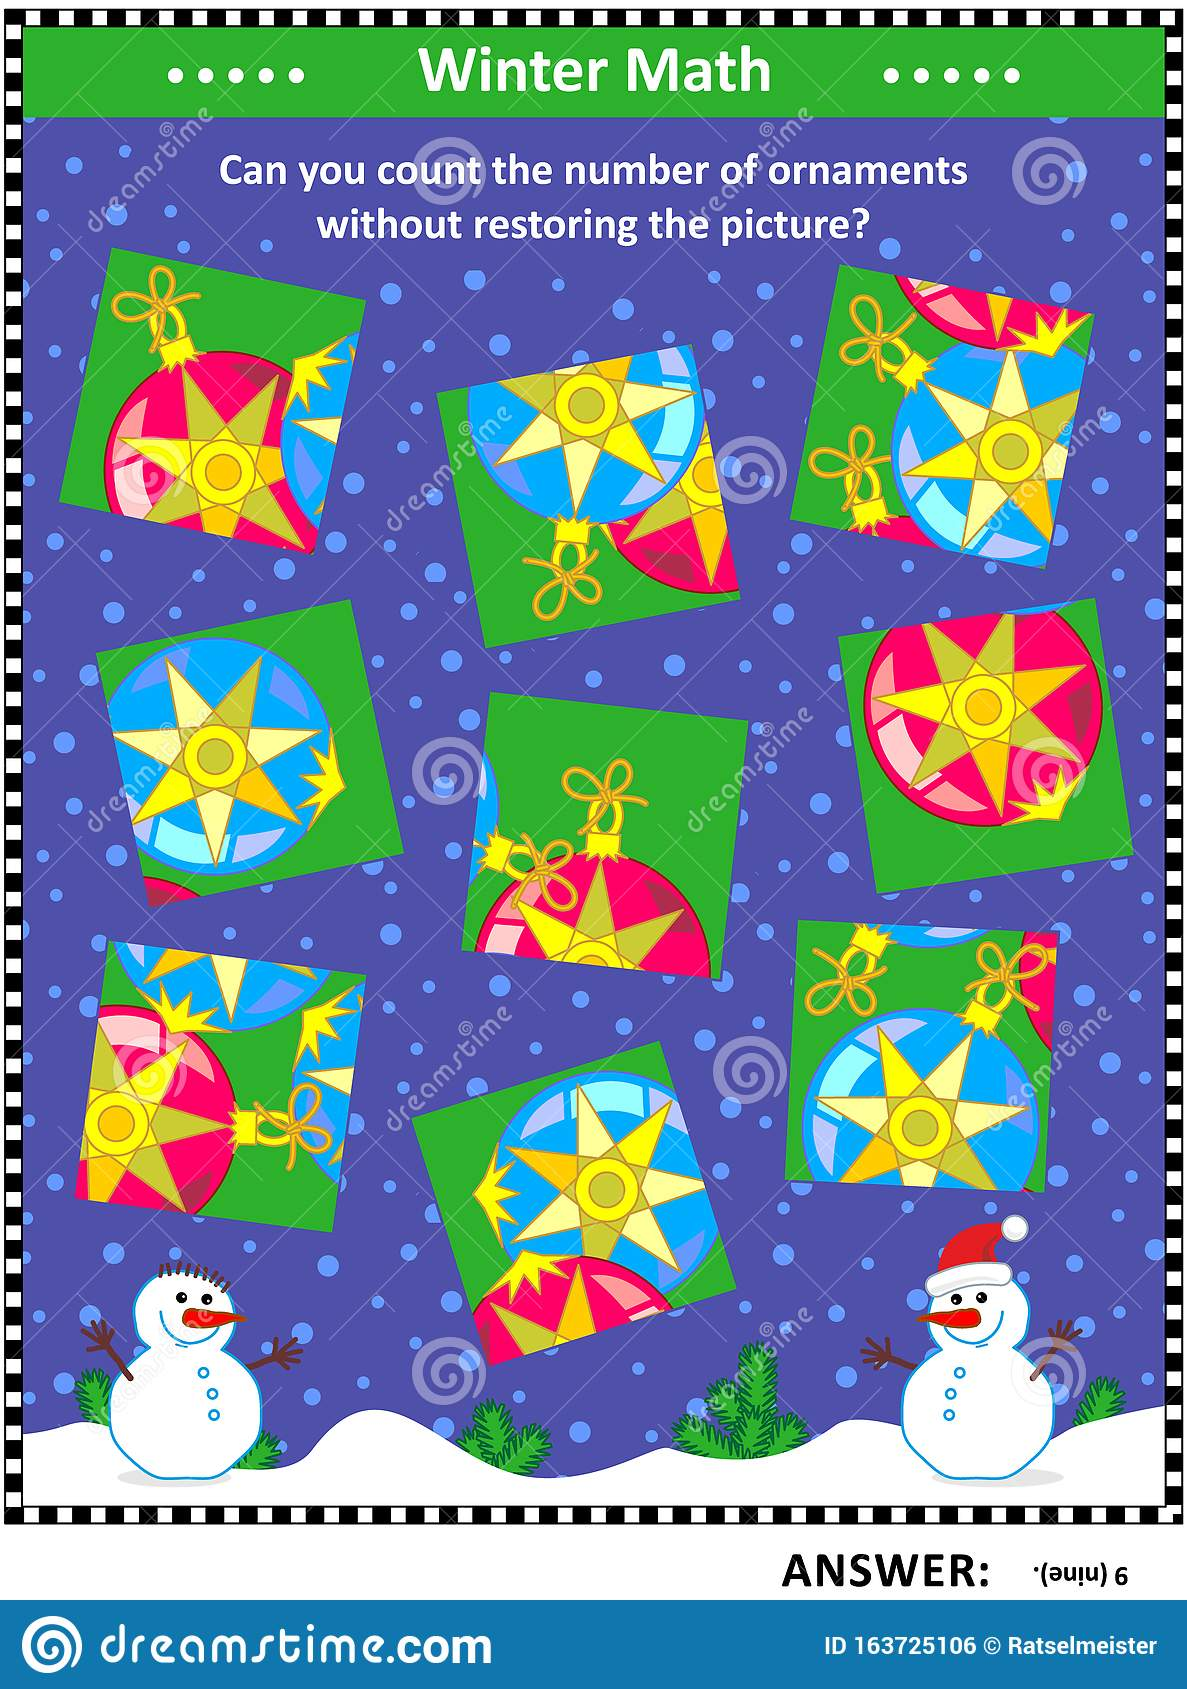 Counting Christmas Tree Ornaments Visual Logic Puzzle